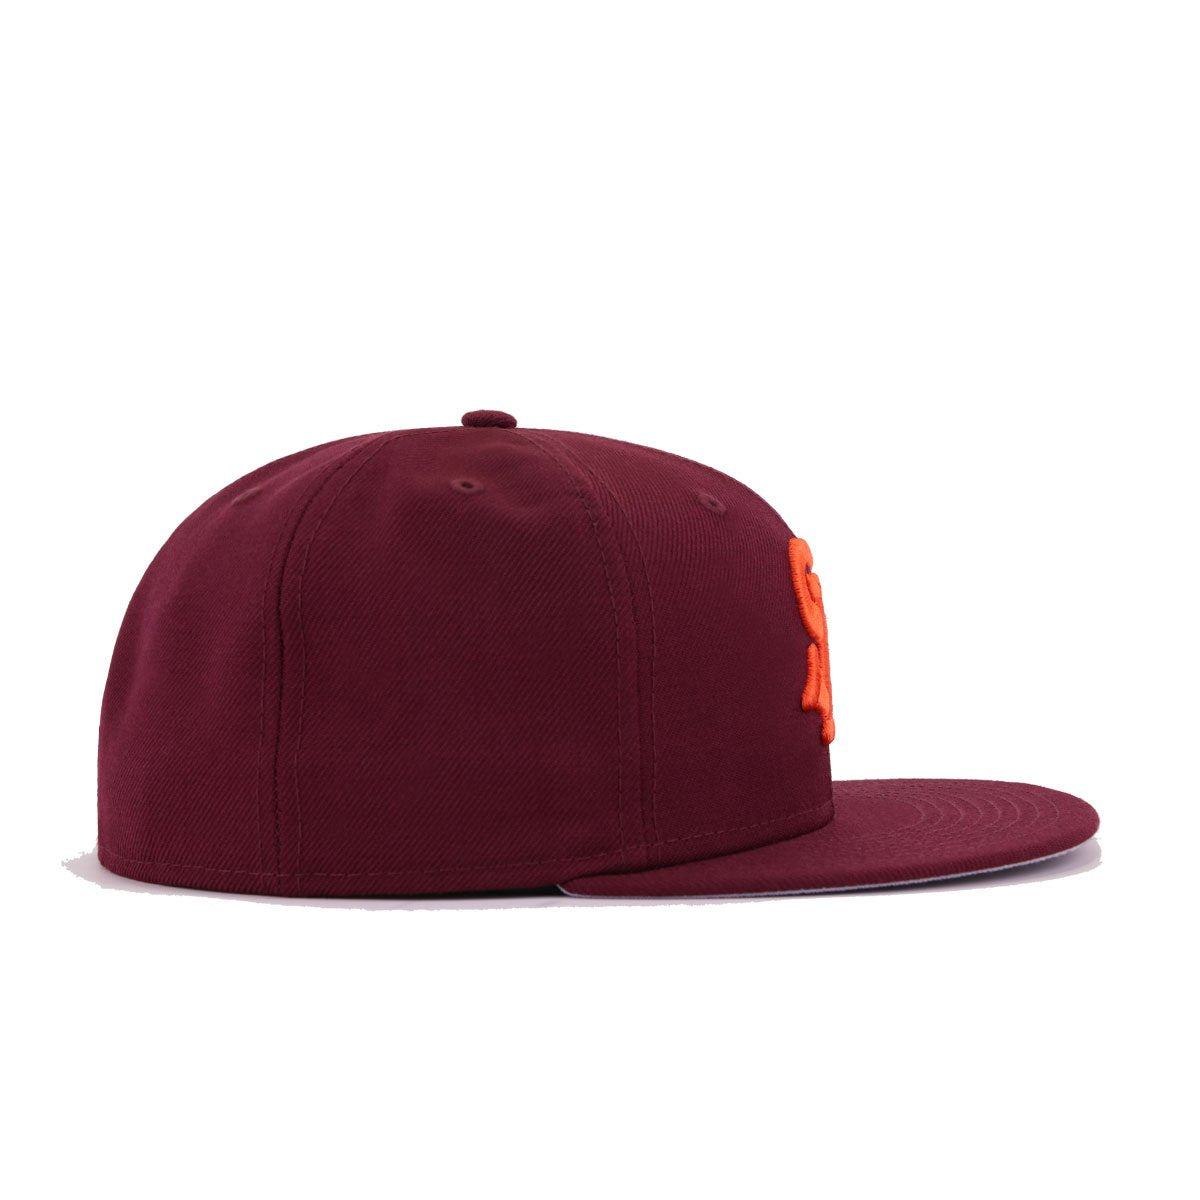 St Louis Browns Maroon New Era 59Fifty Fitted